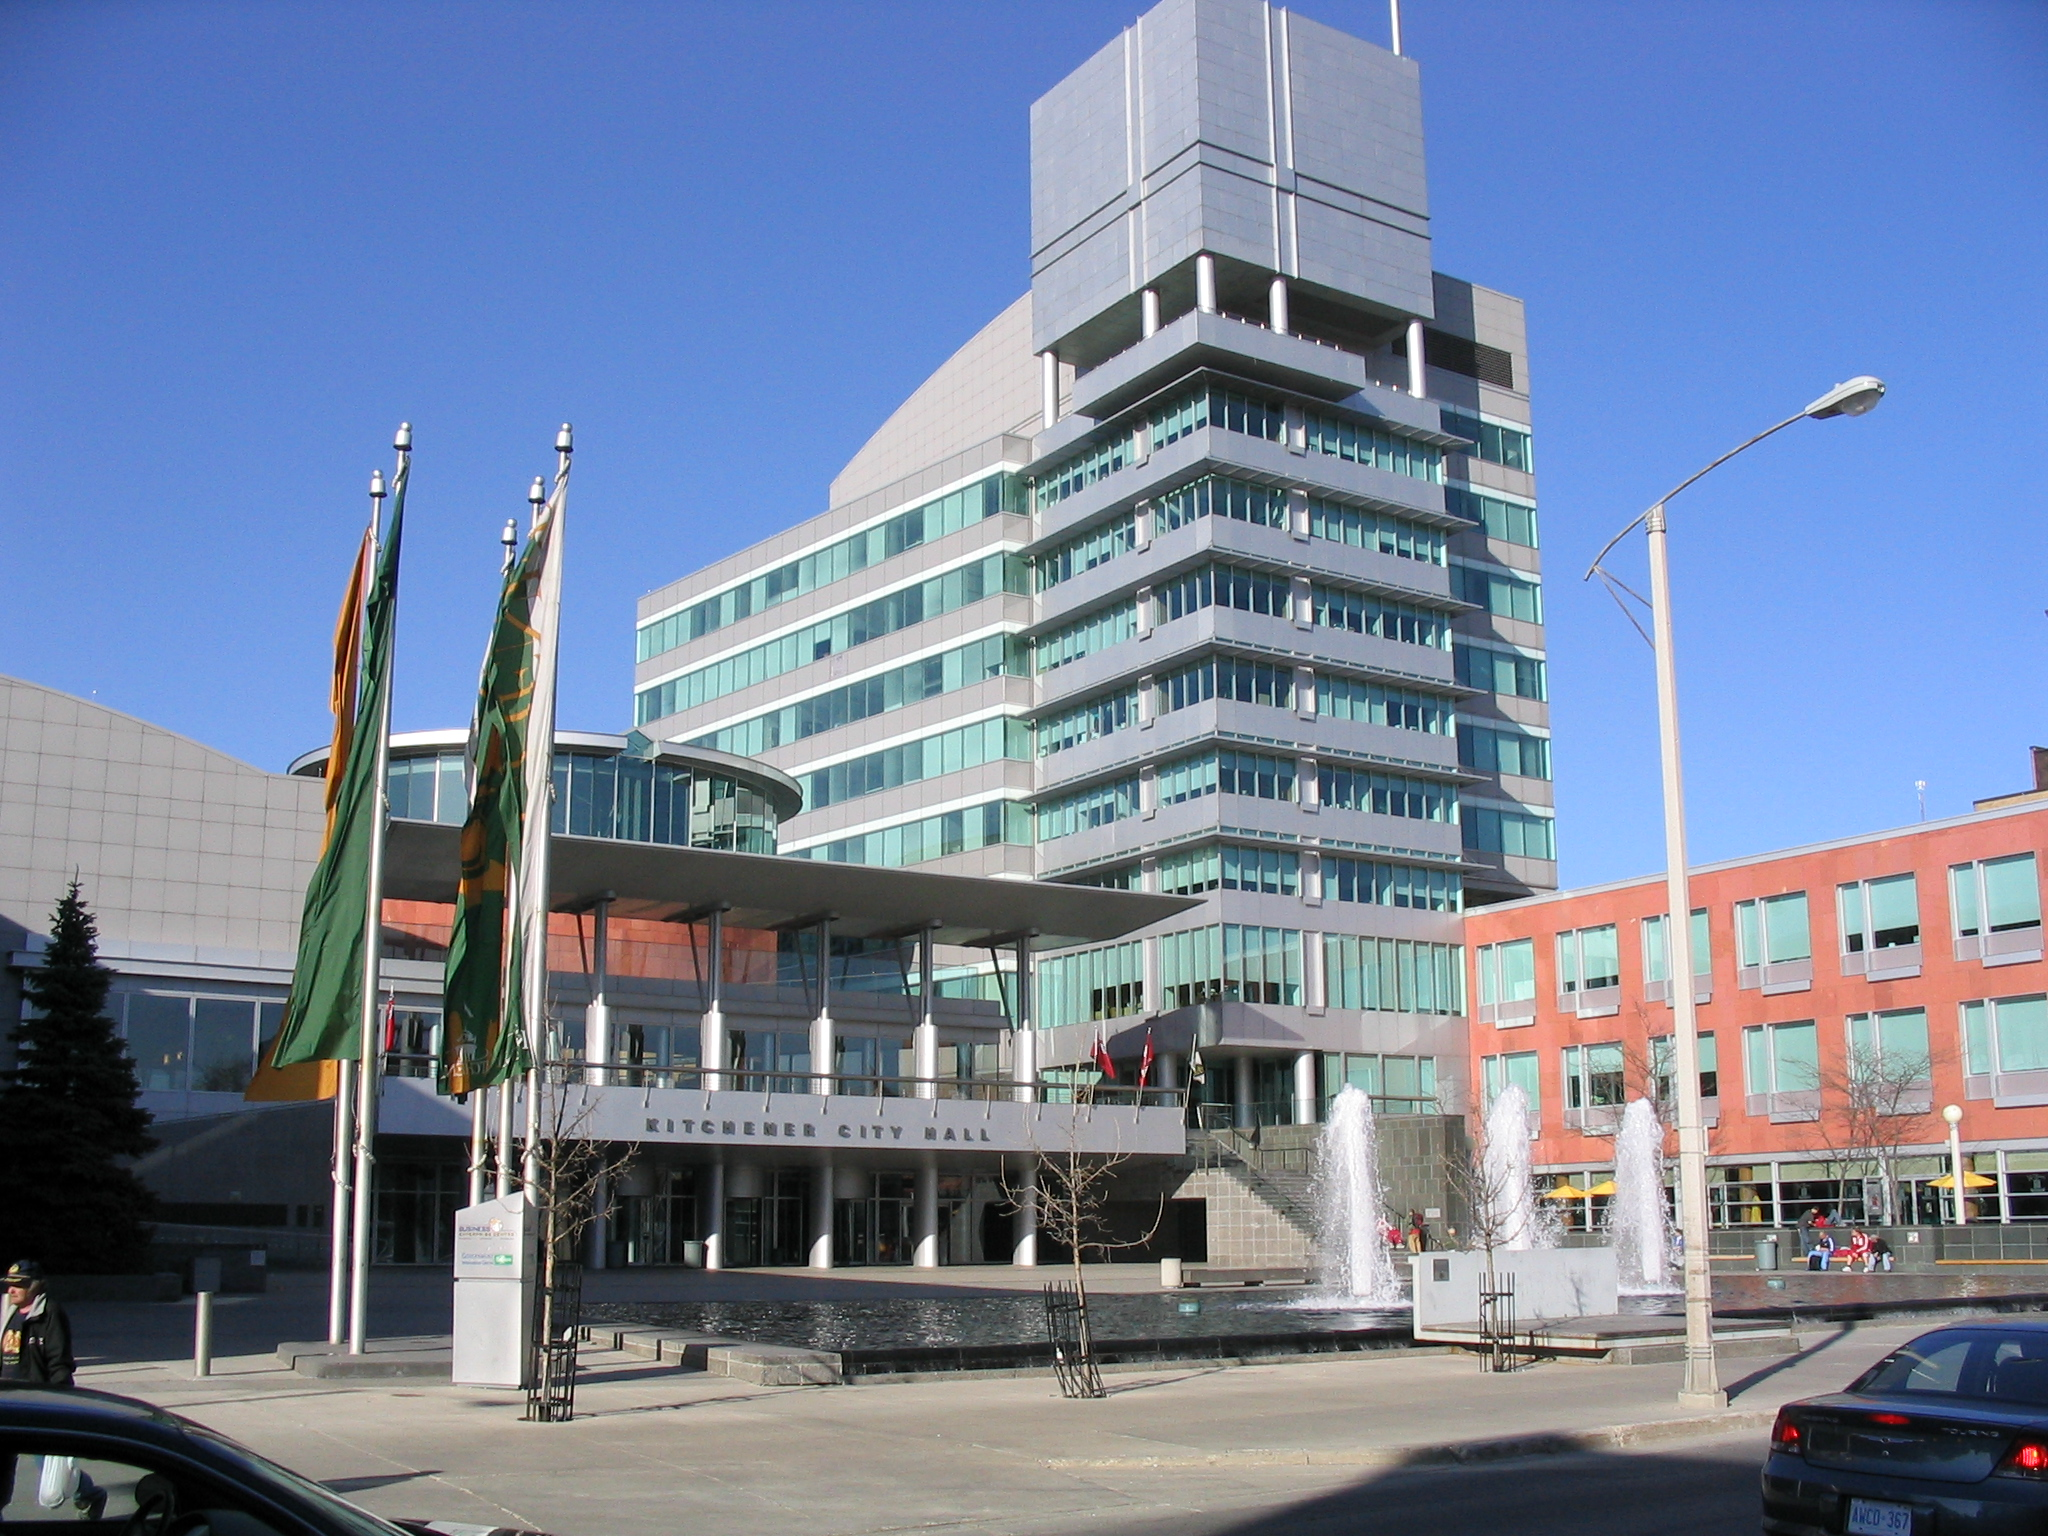 City of Kitchener City Hall